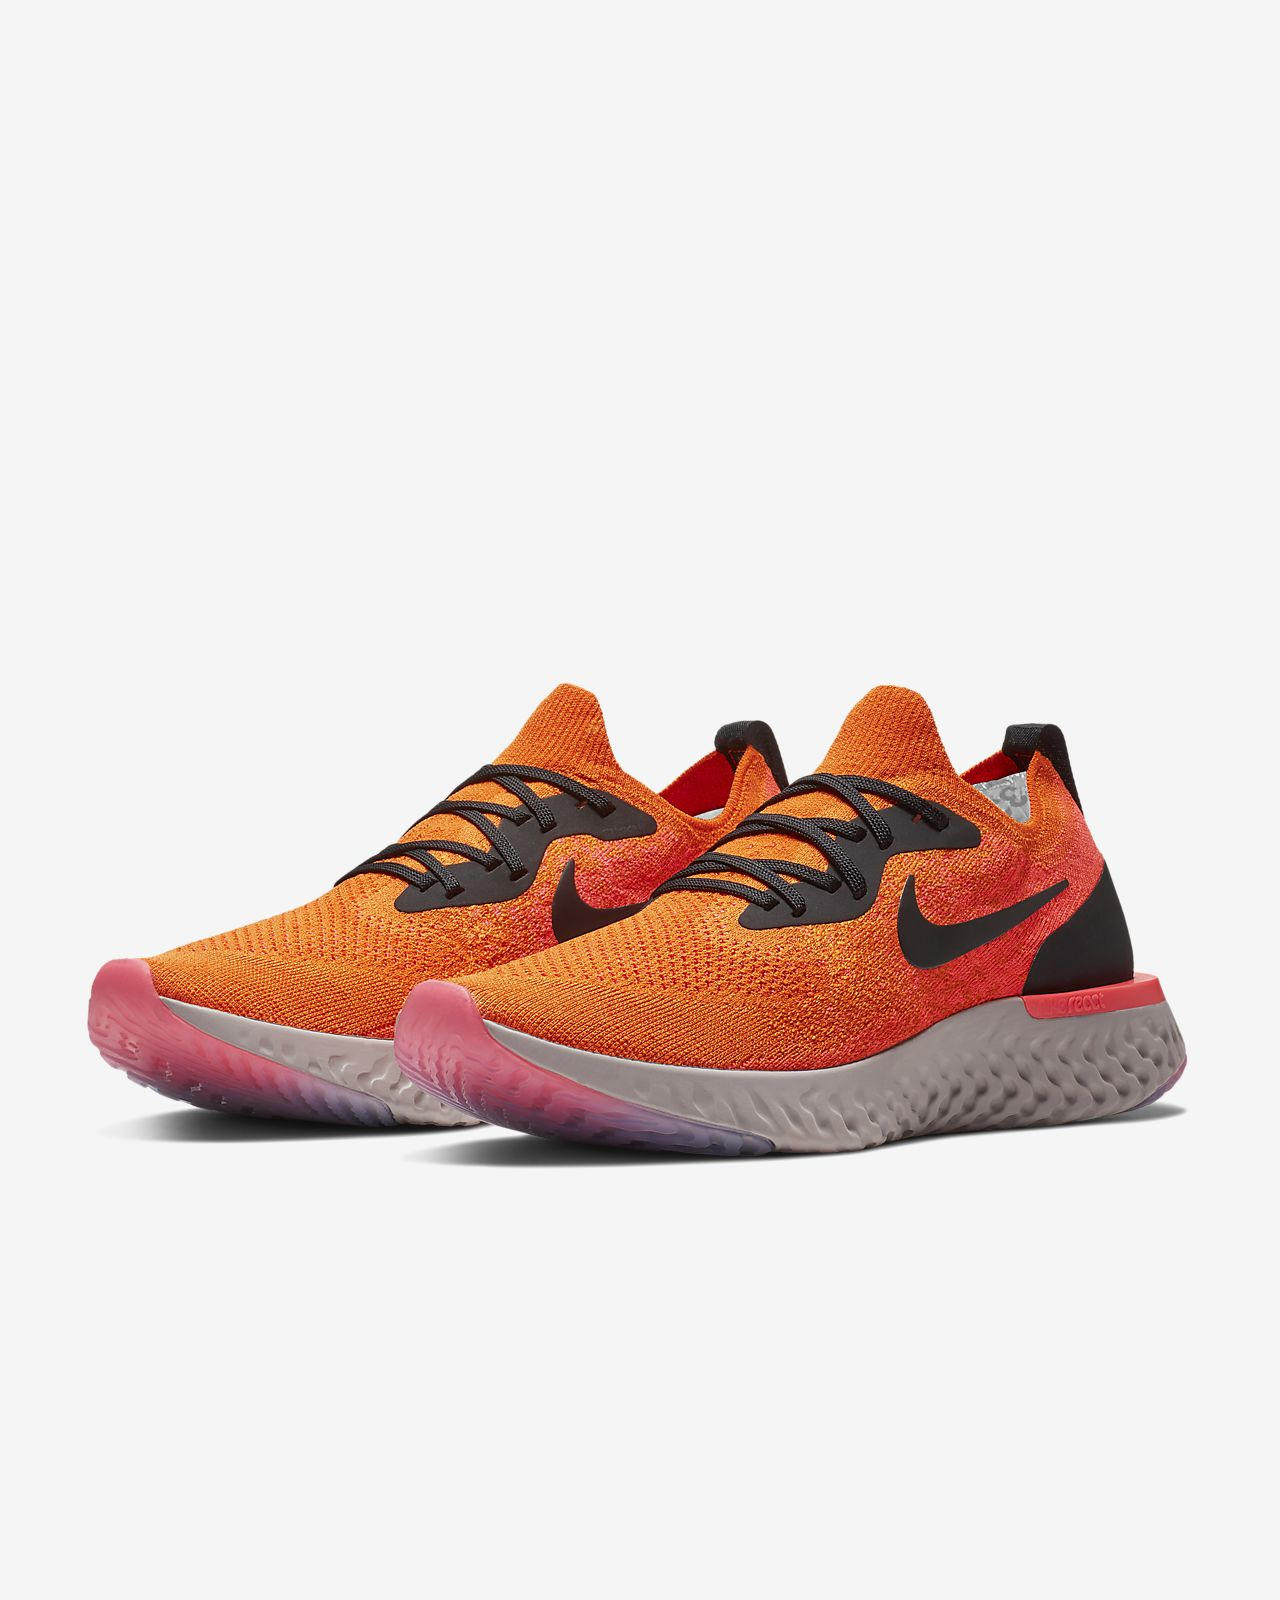 new concept 48a1e efed8 ... Nike Epic React Flyknit 1 Men s Running Shoe